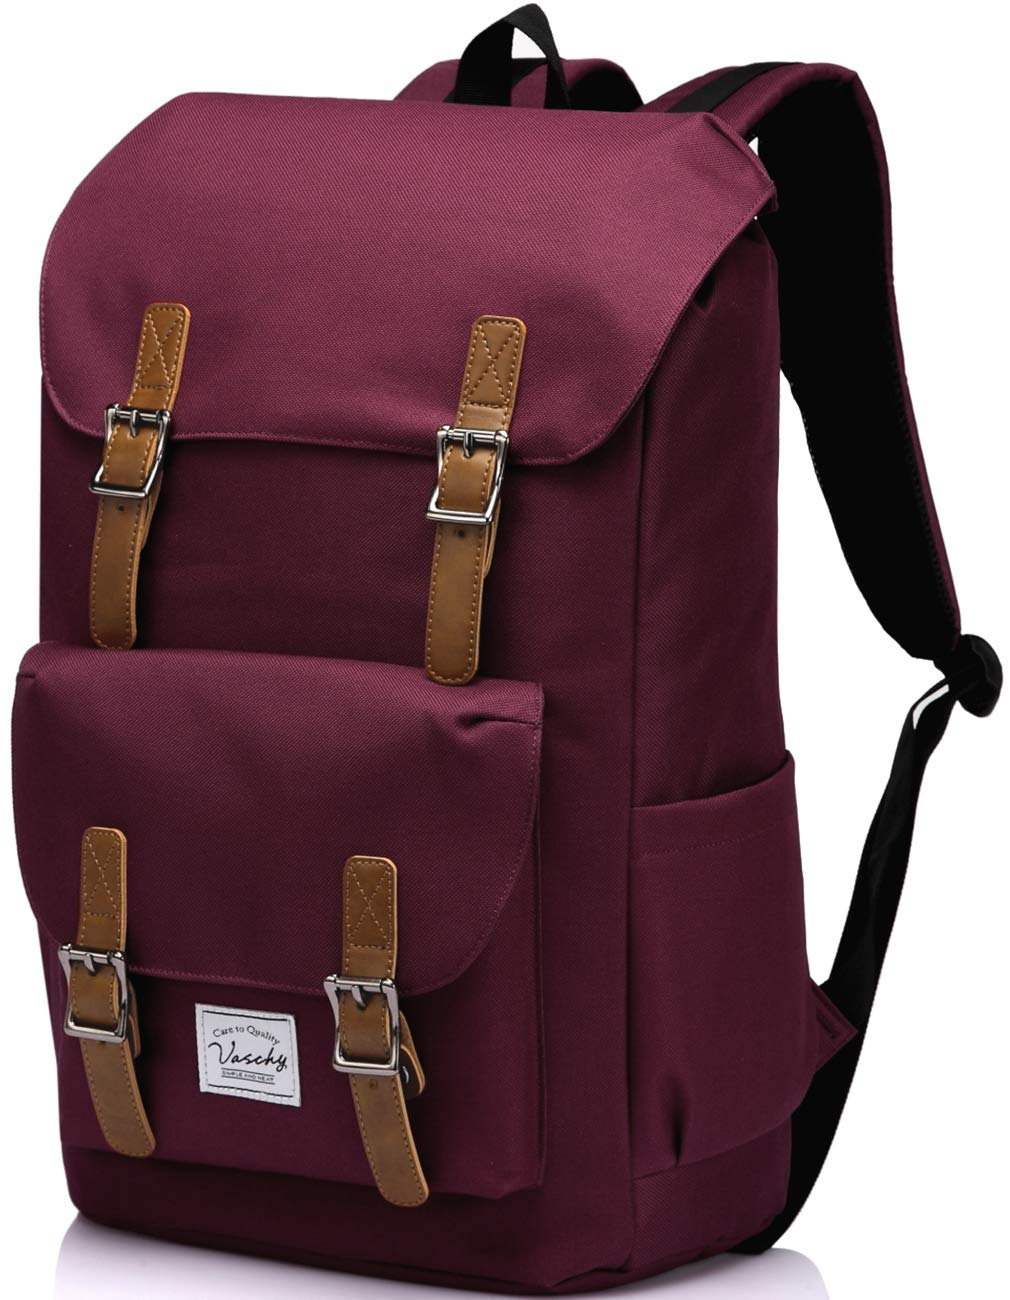 Vintage School Backpack for Women,Vaschy Water Resistant Drawstring Laptop Backpack for Travel with 15.6 inch Laptop Burgundy by VASCHY